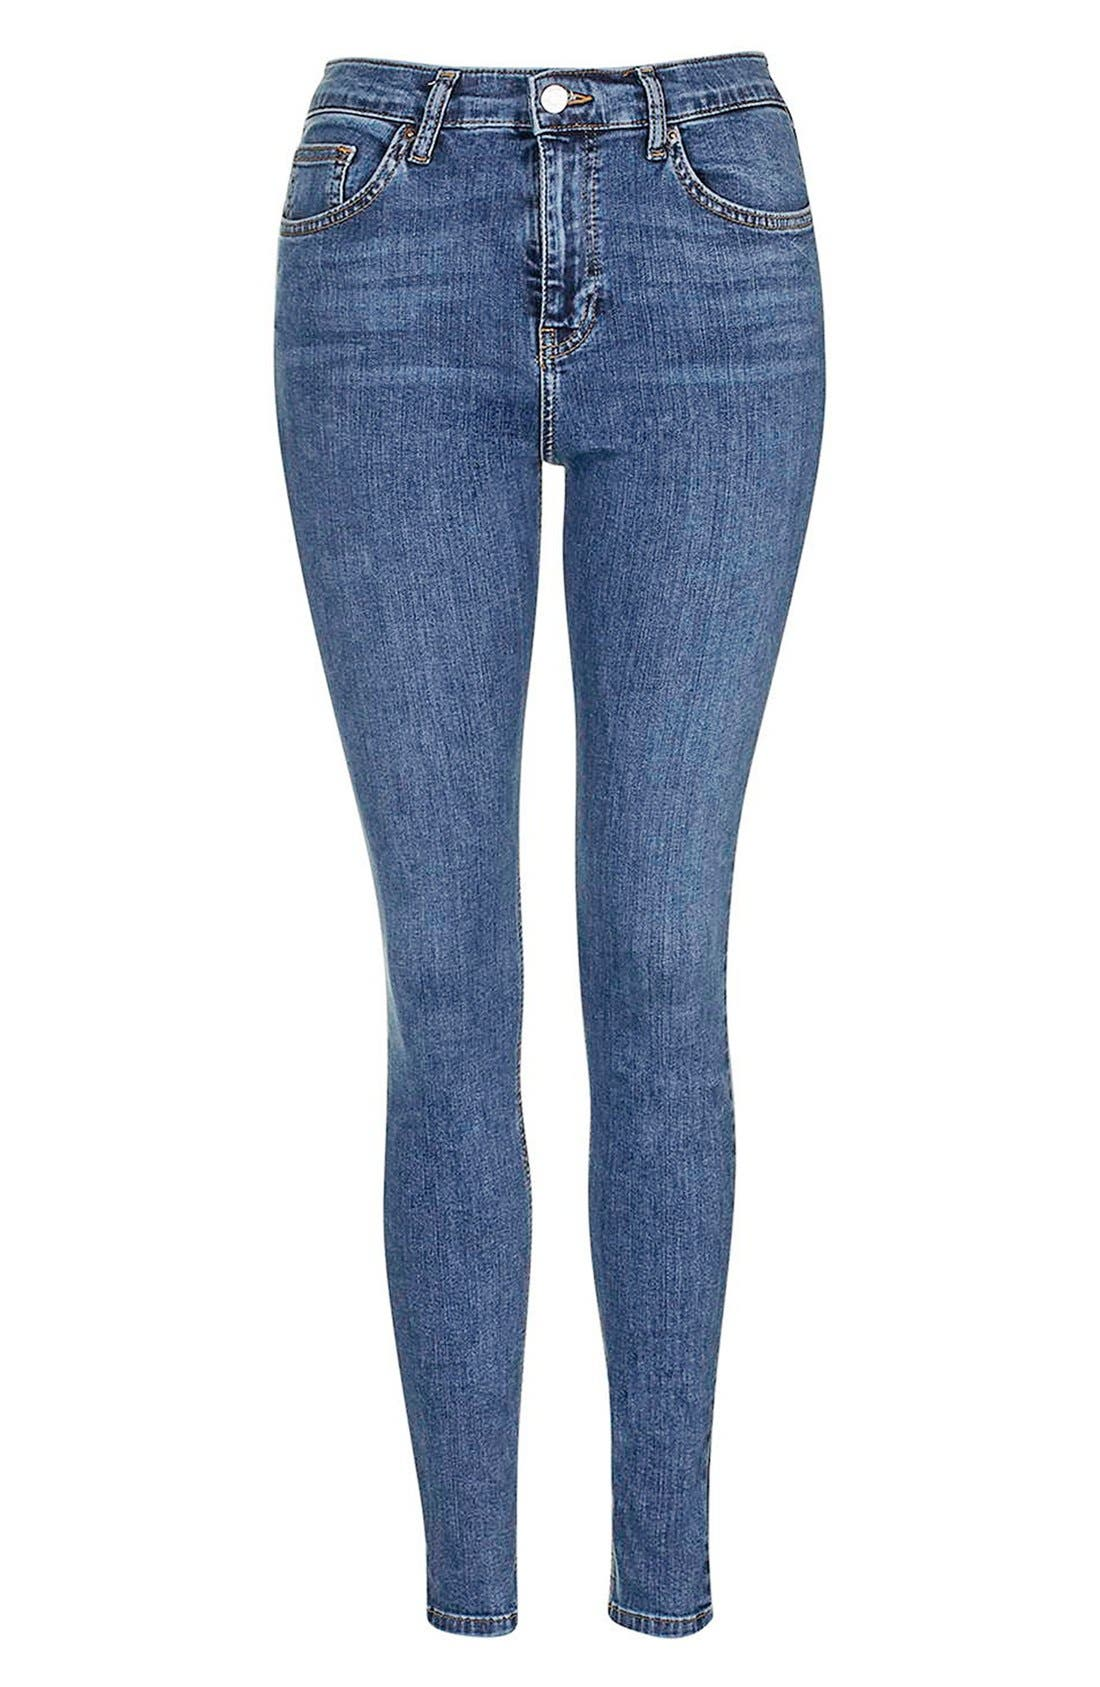 Alternate Image 5  - Topshop 'Jamie' High Rise Ankle Skinny Jeans (Petite)